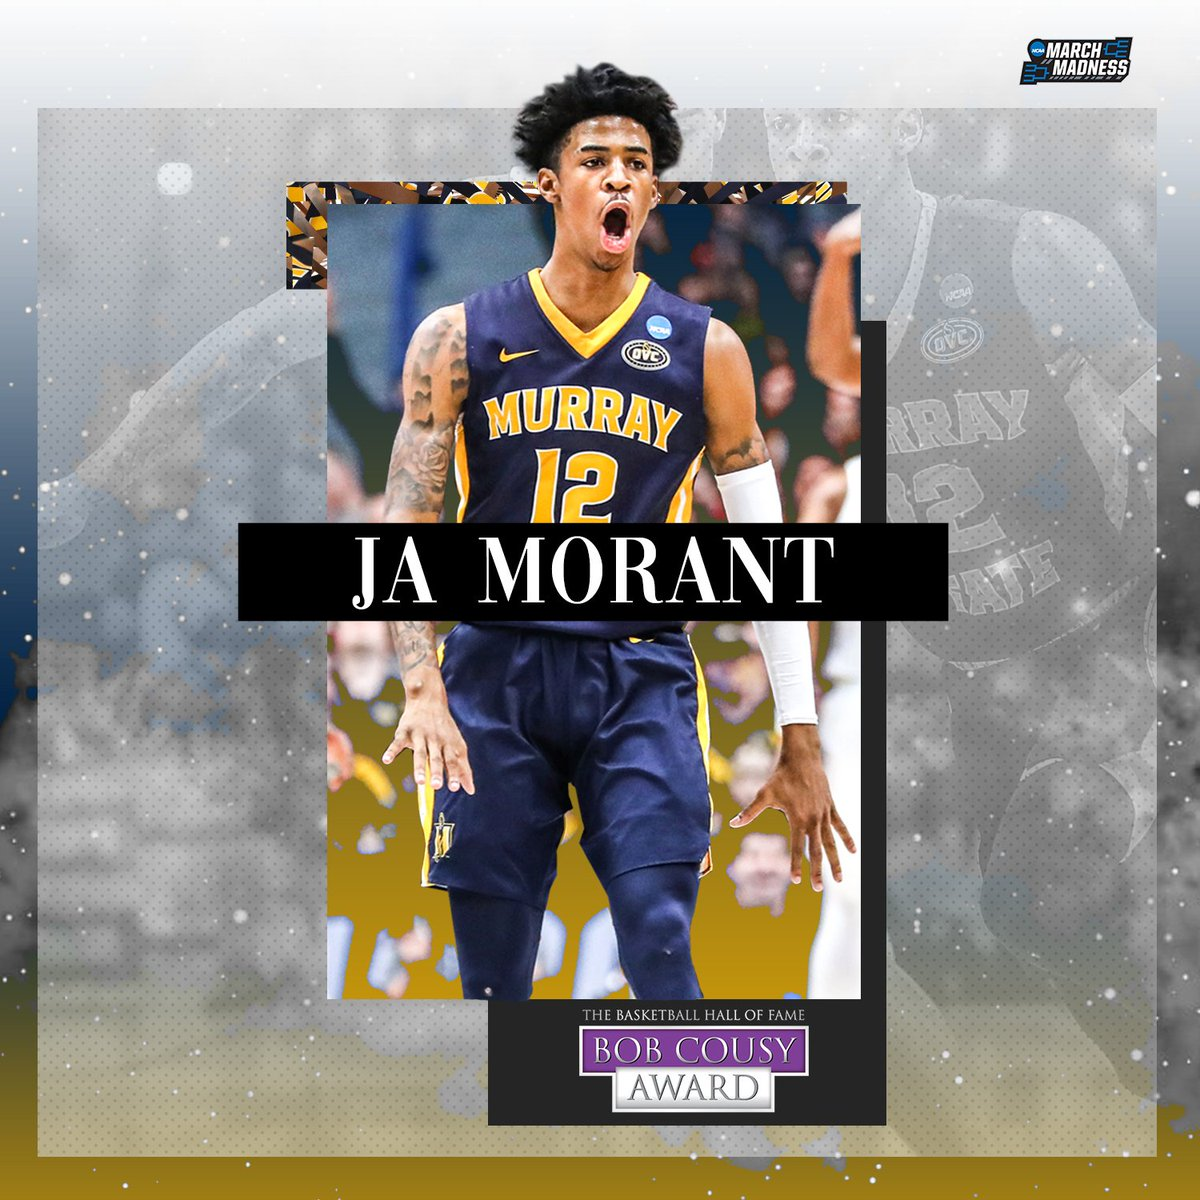 The ultimate floor general.  Congrats to Ja Morant on winning the #CousyAward, awarded to the top point guard in the country! 👏